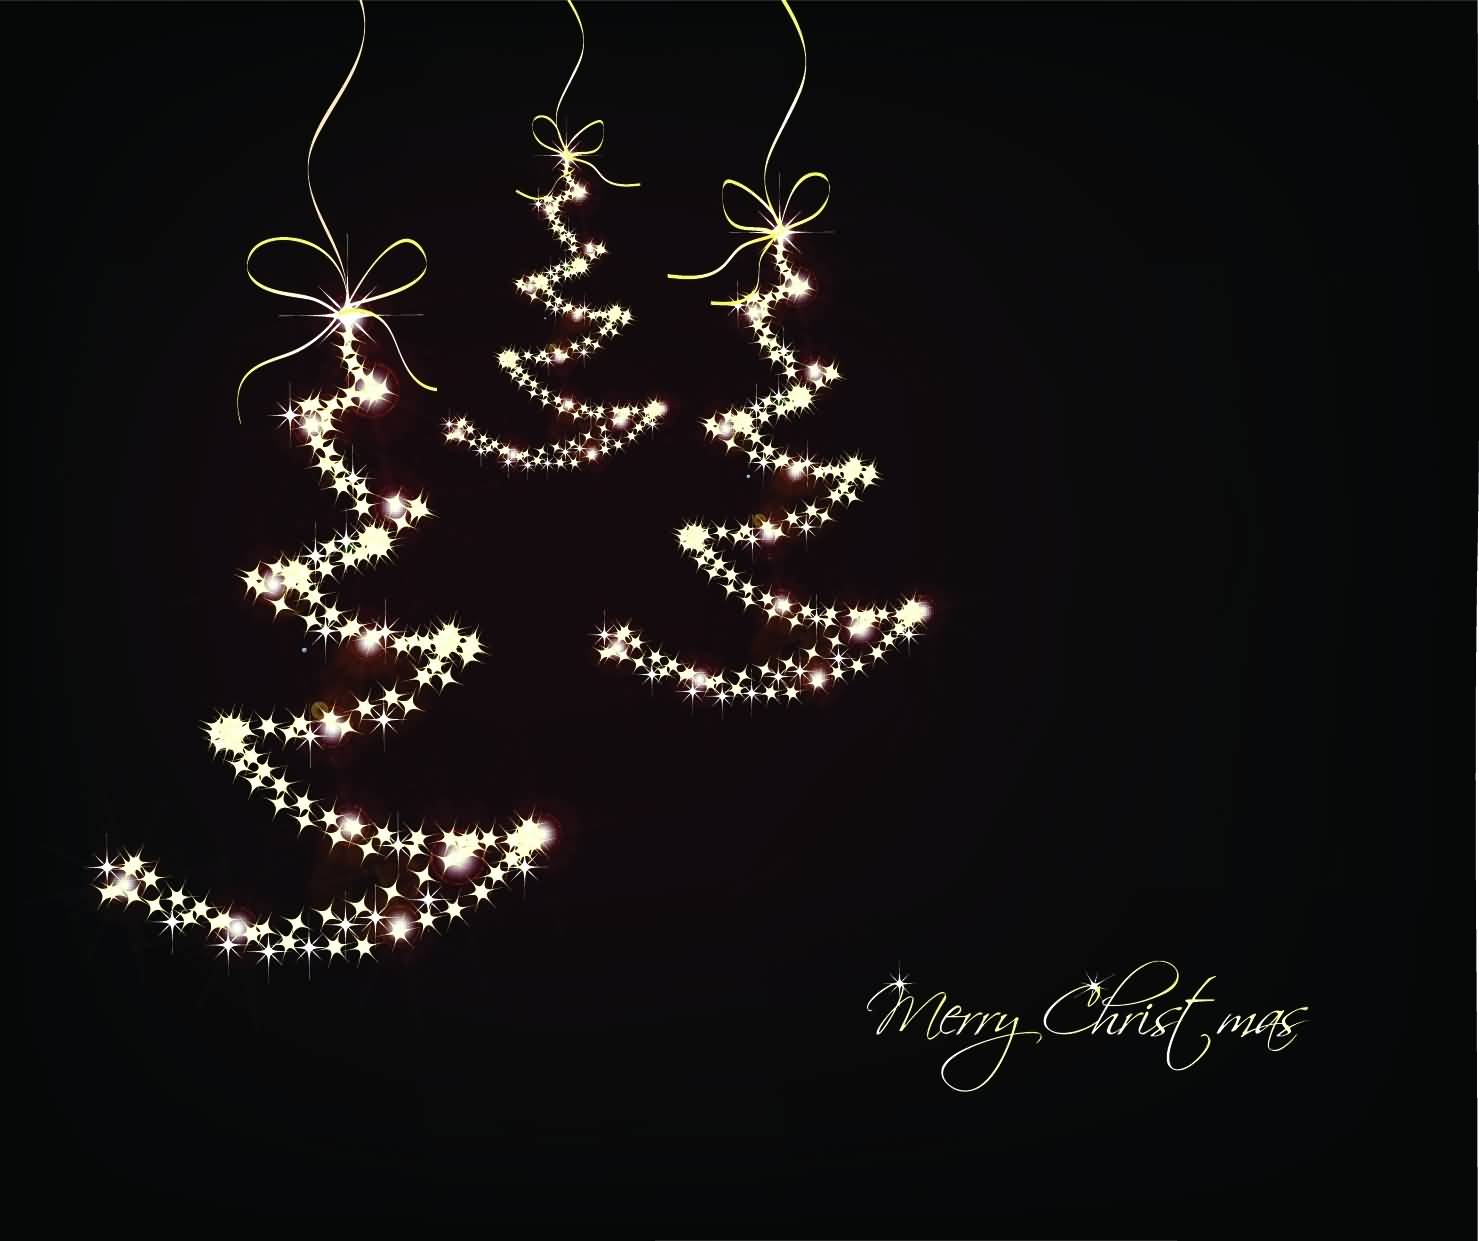 Christmas Cards Ideas Image Picture Photo Wallpaper 16